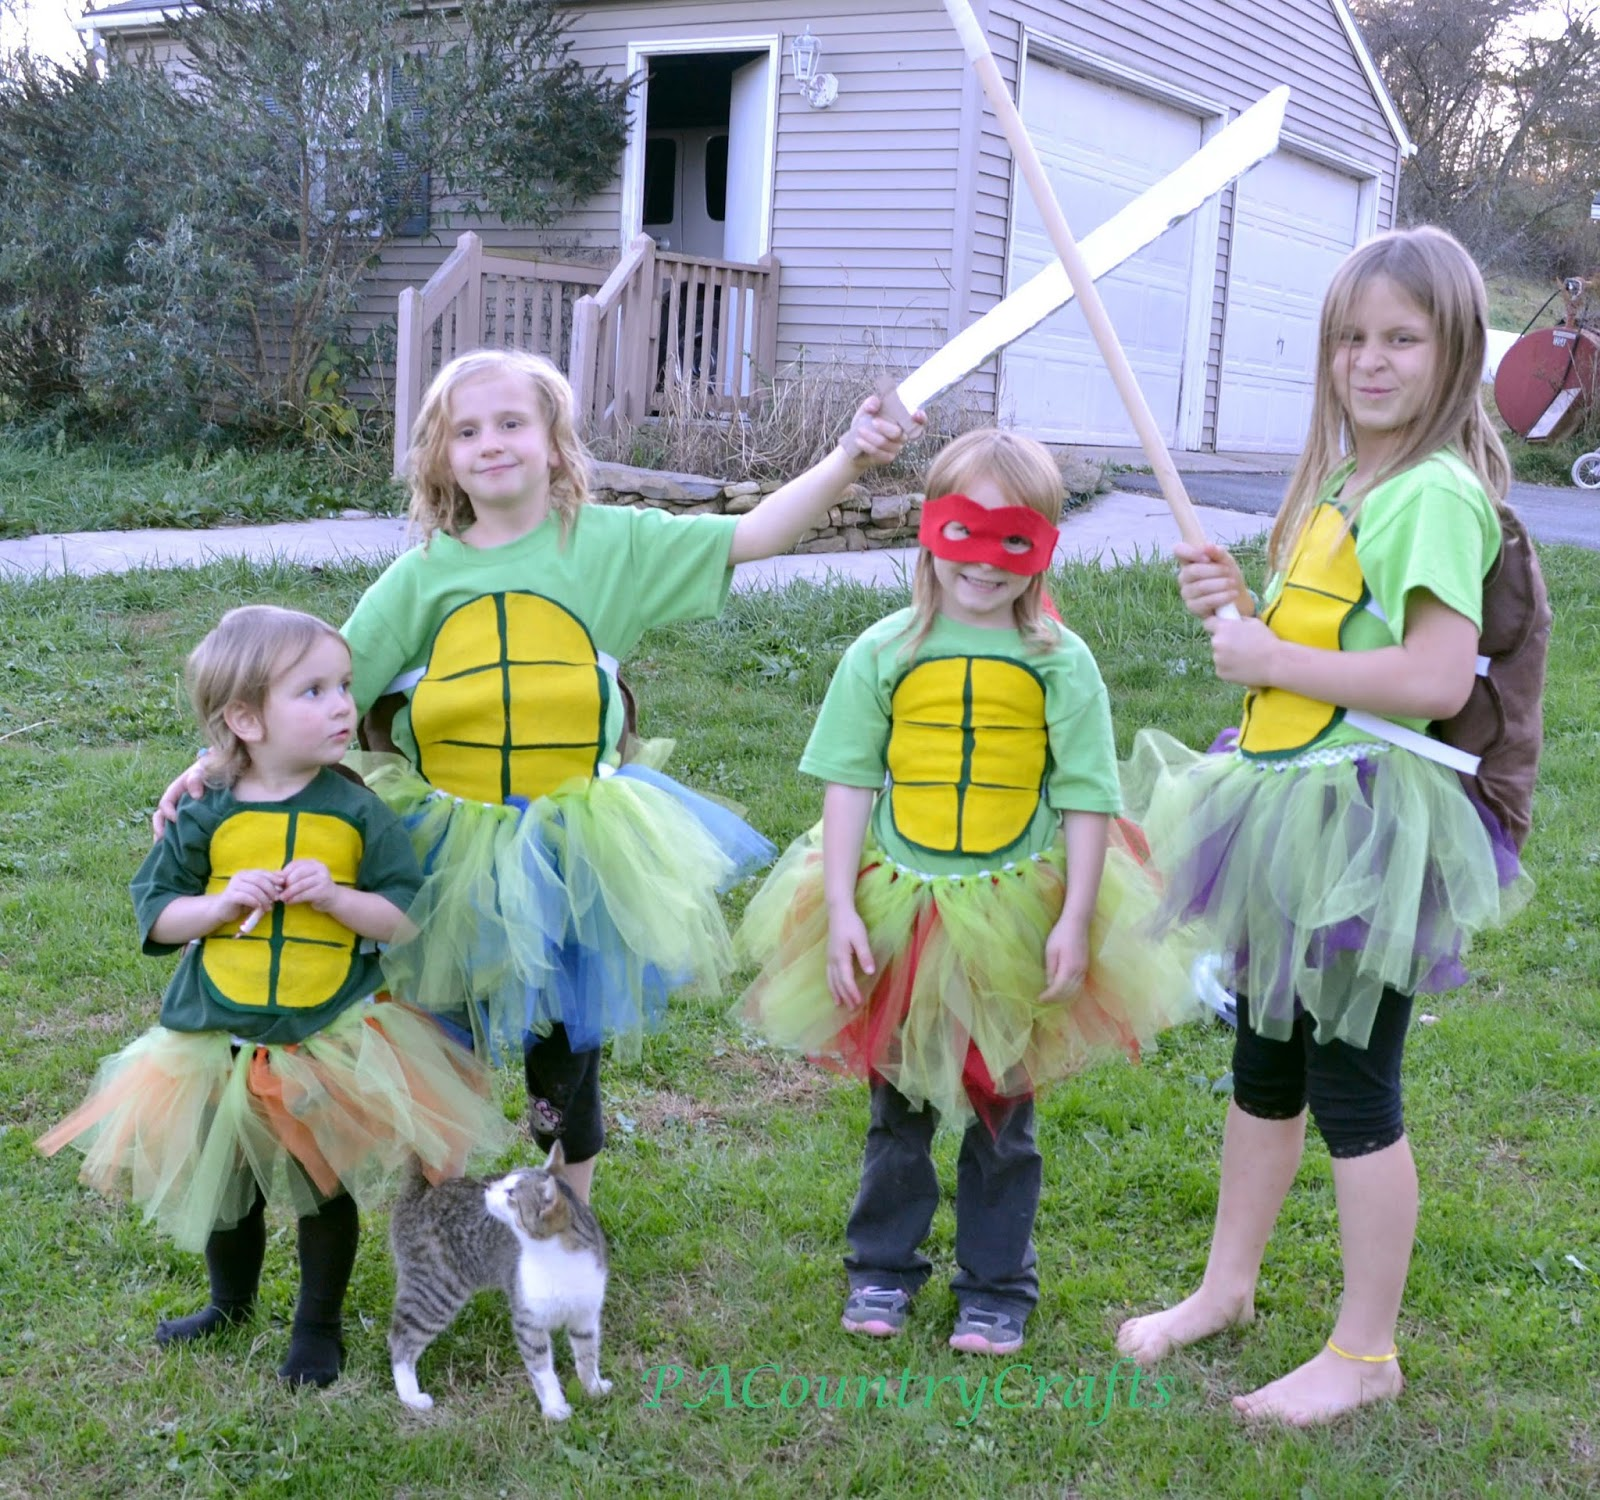 Diy girls ninja turtle costumes with tutus pa country crafts i didnt take pics for a tutorial since it was rushed but i will explain how i made them the shell fronts are made from sheets of felt and hot glue solutioingenieria Gallery